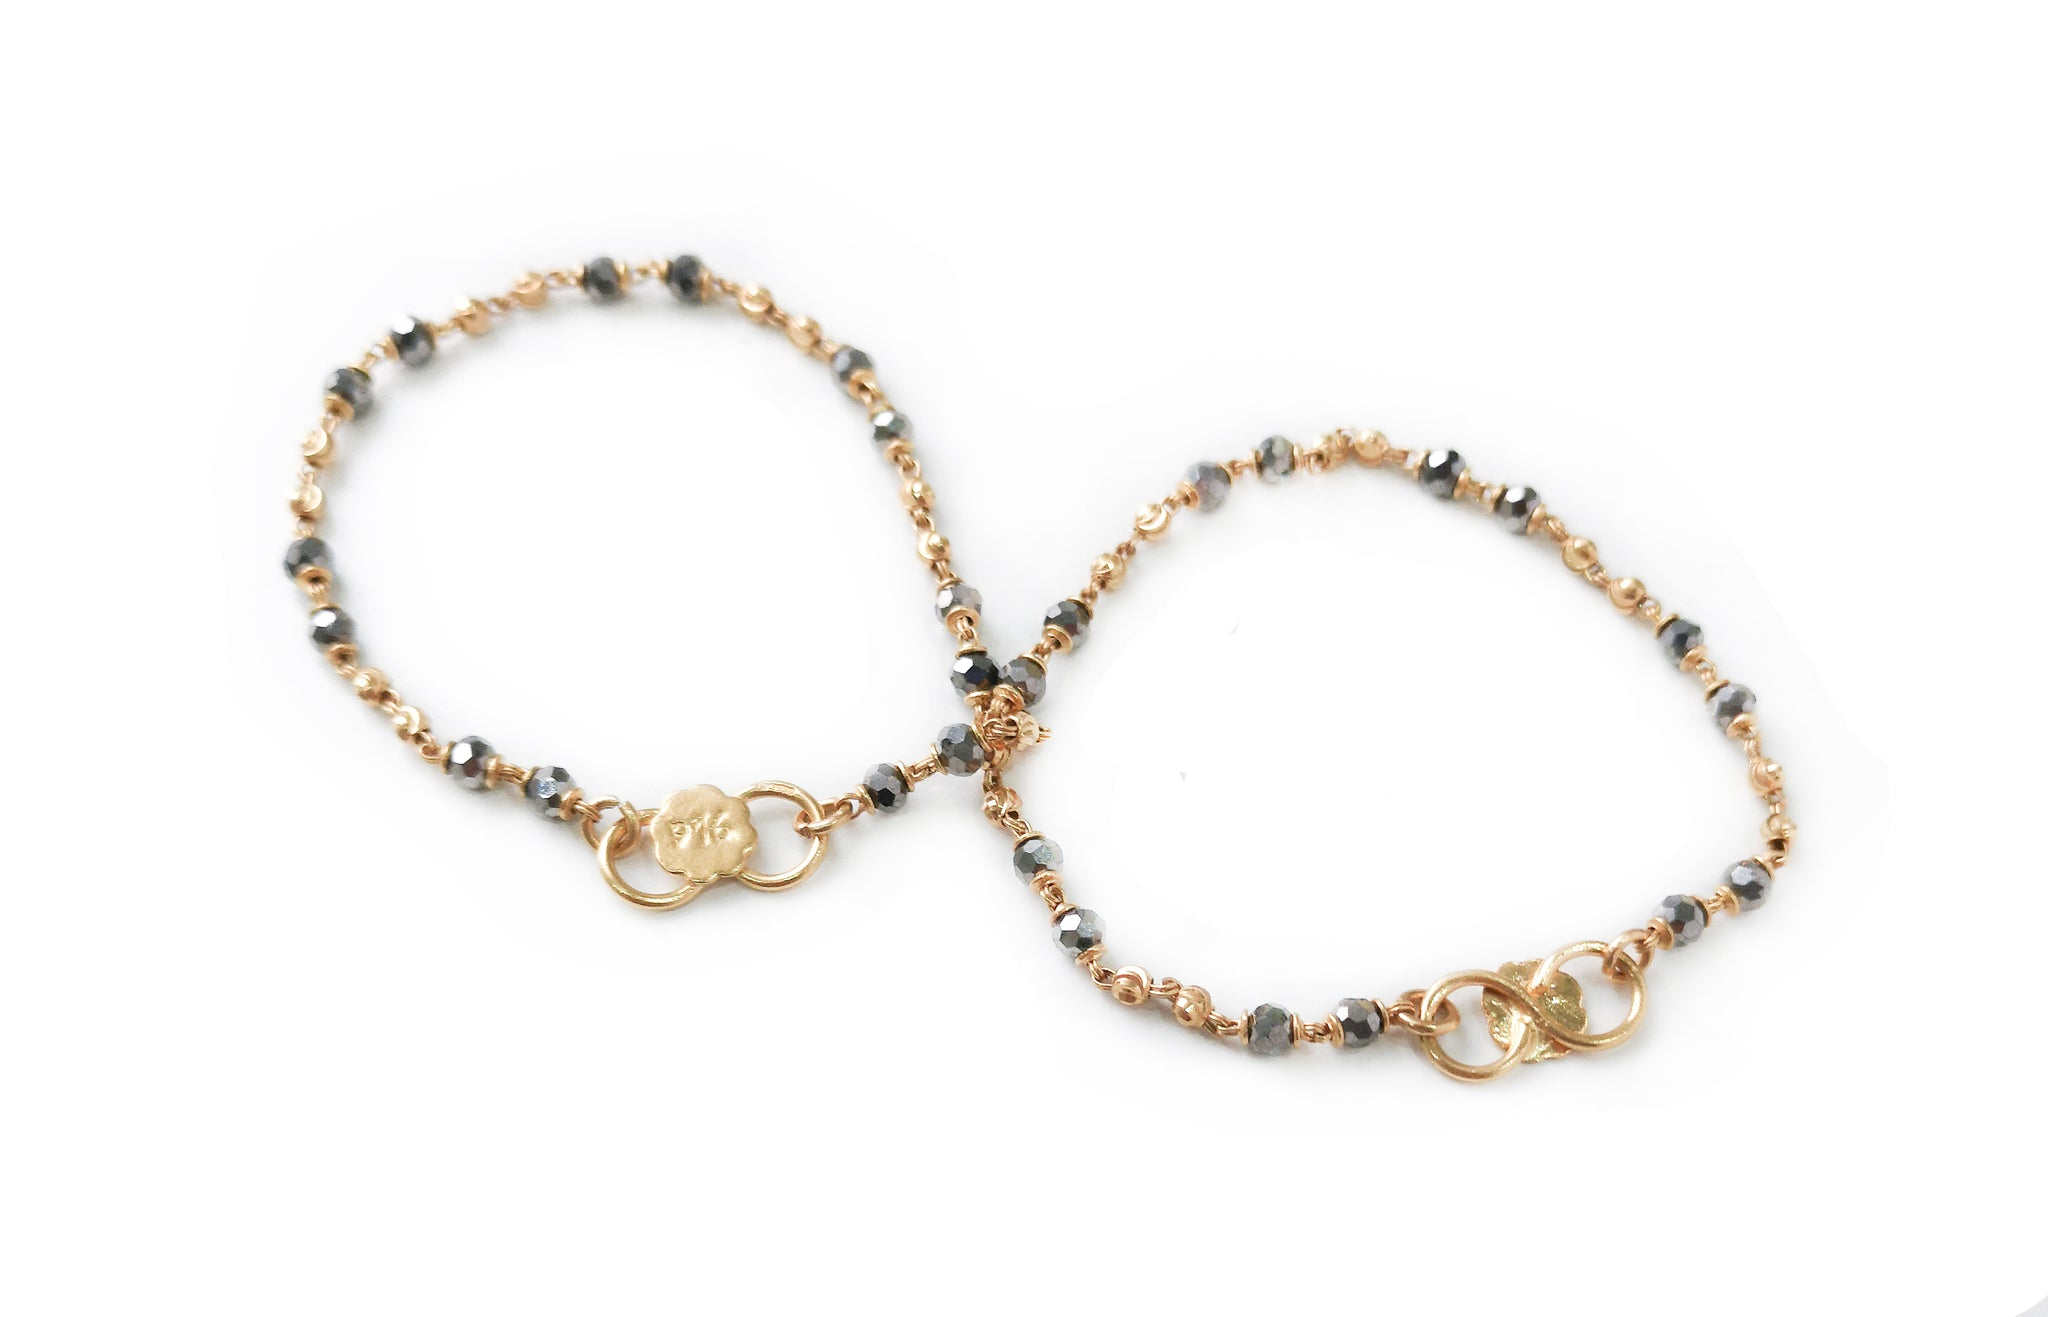 22ct Gold Children's Bracelets with Silver Faceted Crystals and Diamond Cut Gold Beads CBR-7717